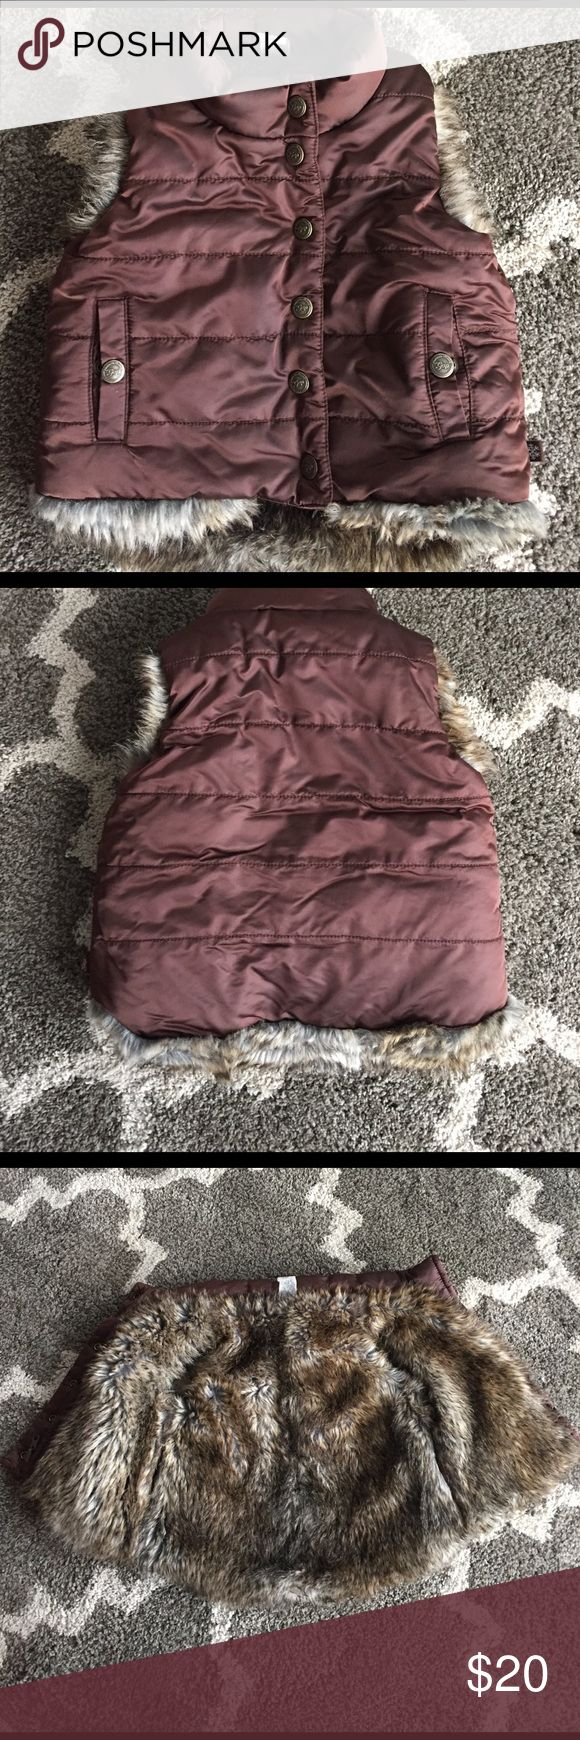 GAP 3 years puffy Vest very cute GAP Size 3 years puffy vest, very cute and warm completely fur lined GAP Jackets & Coats Vests